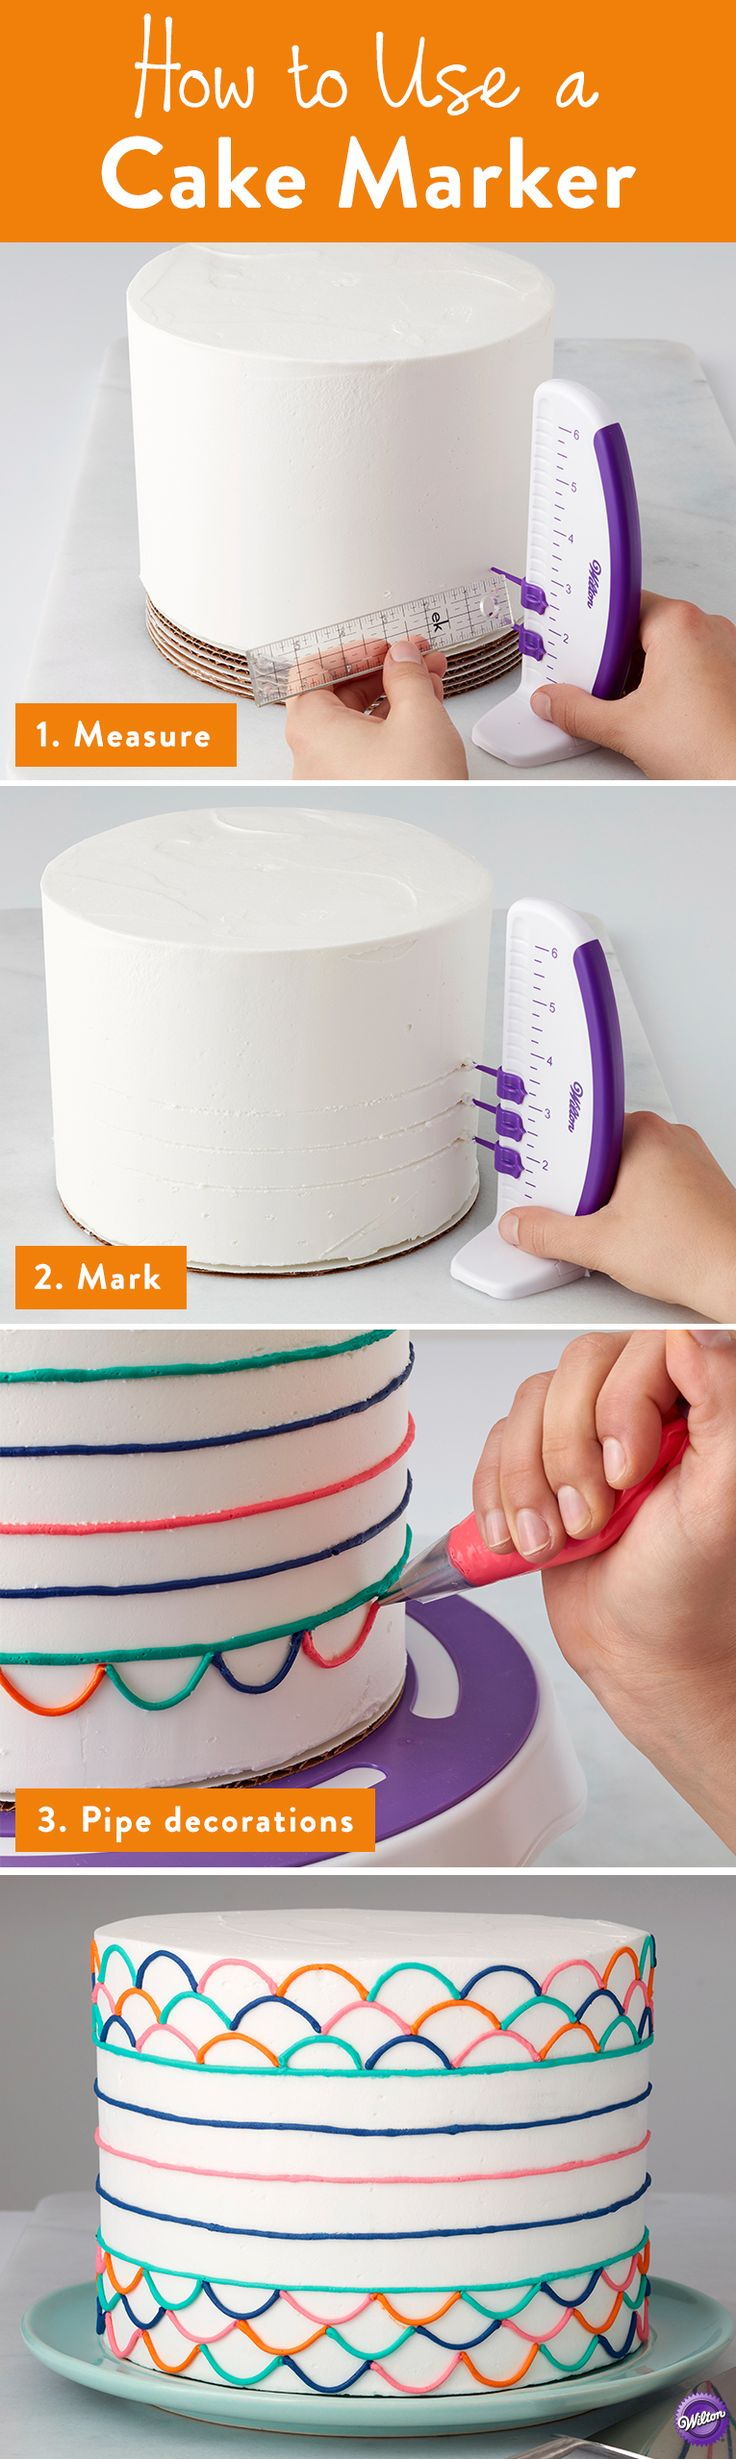 Easily mark the sides of your cake for perfect placement of accents, borders and more using the Wilton Cake Marker! Three marker pins snap into place along the edge of the vertical ruler with a stable base so you can mark the placement for decorations. Or use it to divide your cake for evenly spaced garlands, drop strings, and floral placement. So much easier than holding a ruler with one hand and trying to accurately mark with another.